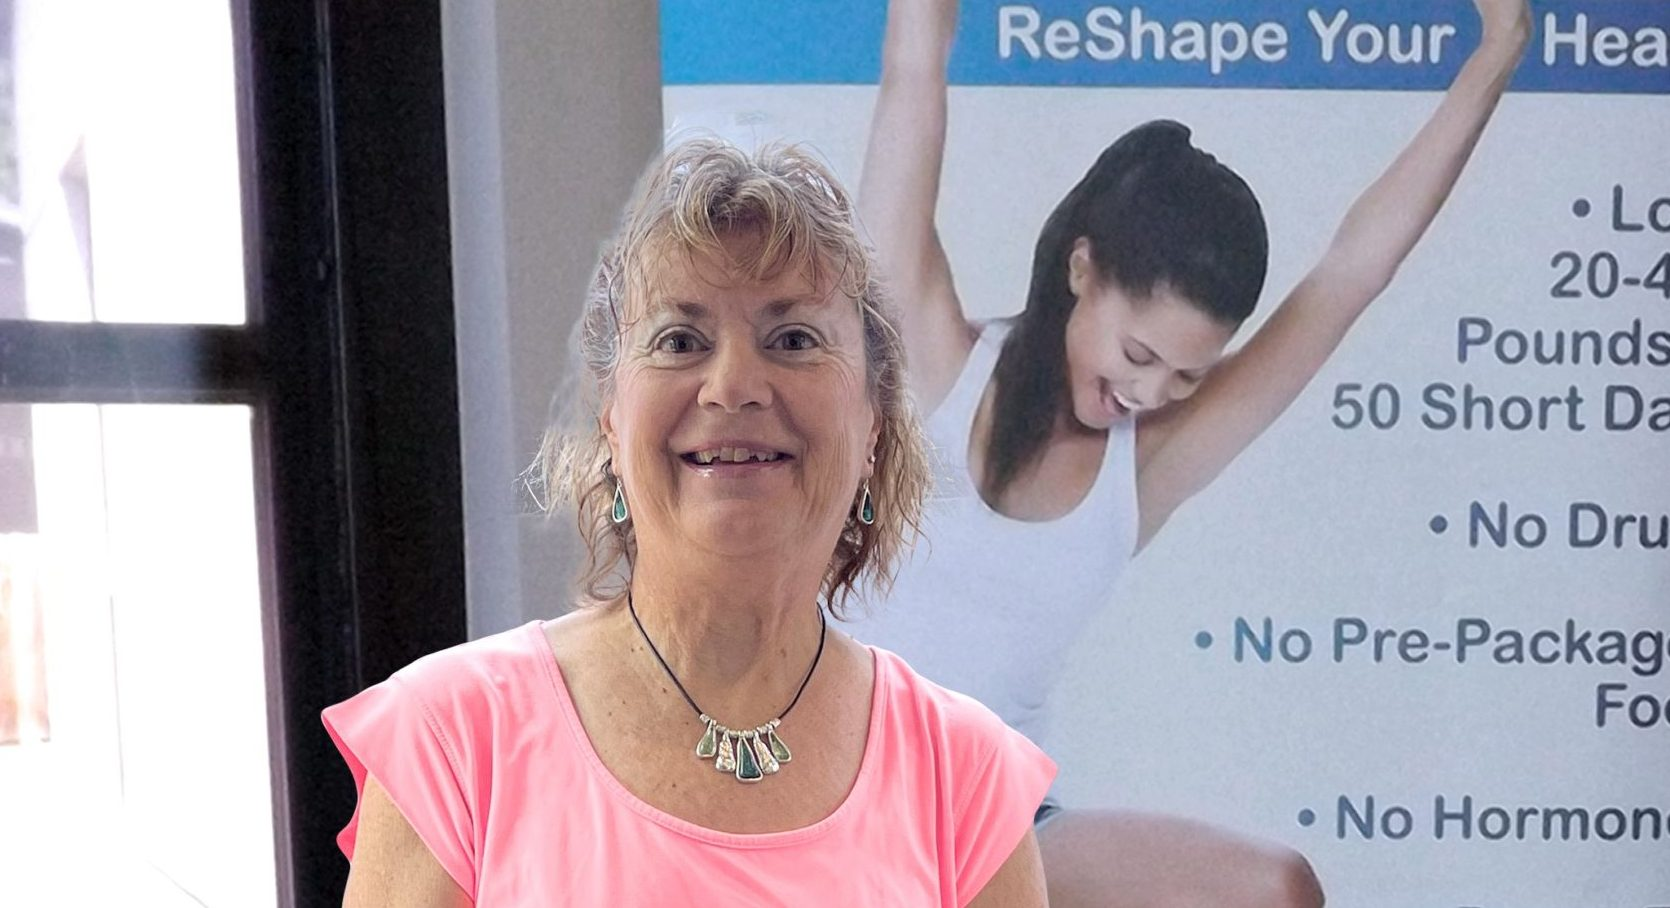 Inspirational Story For July – Carla is Pain Free & Transformed!